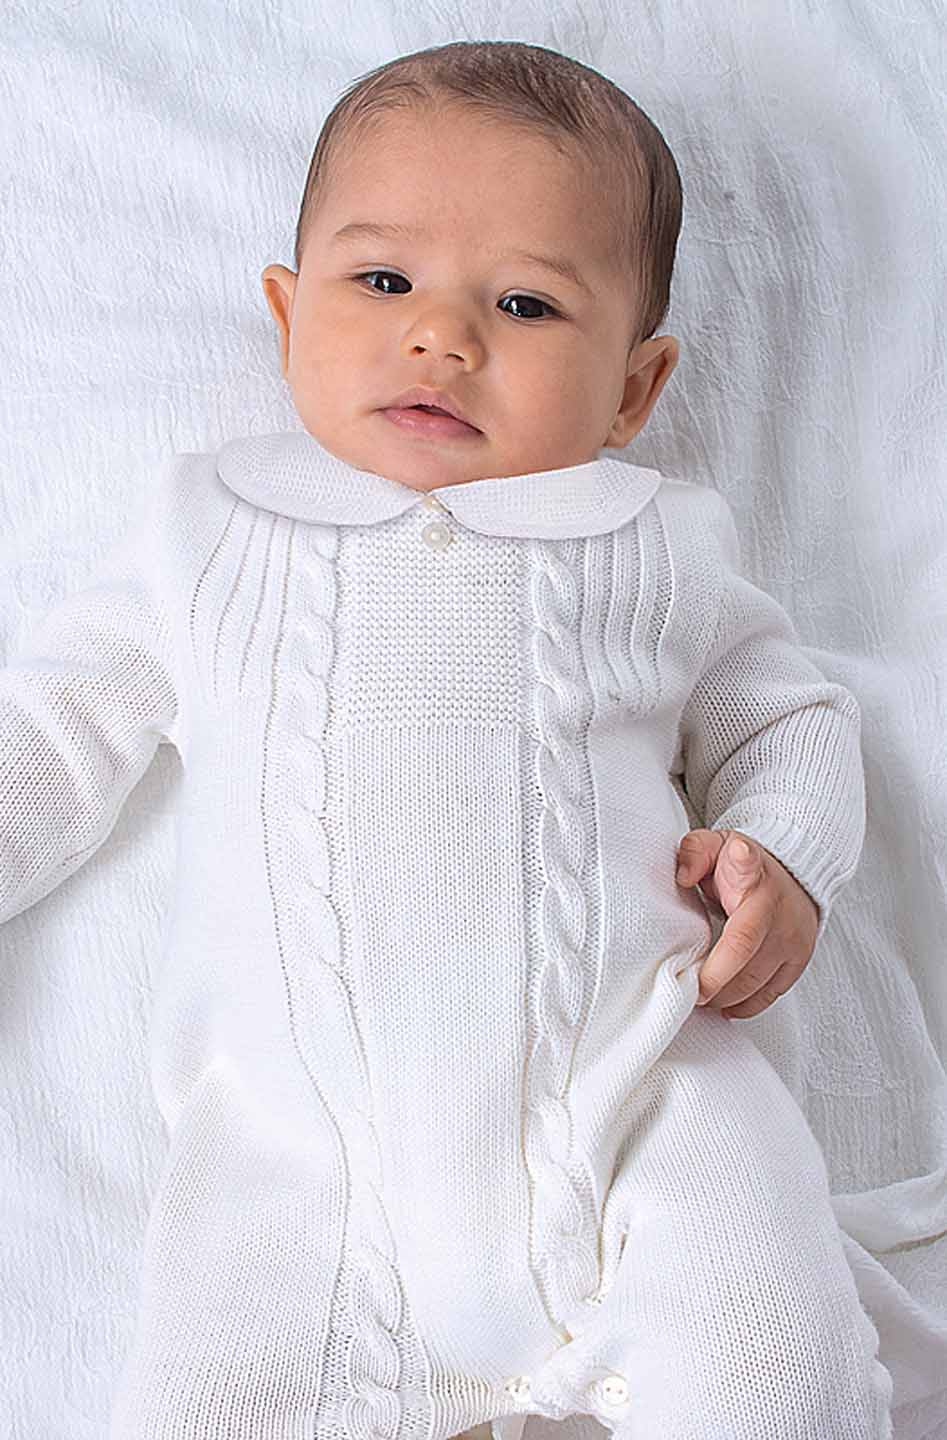 1dc86ace9 NEW Sarah Louise White Knit Romper with Embroidered White Pique Collar